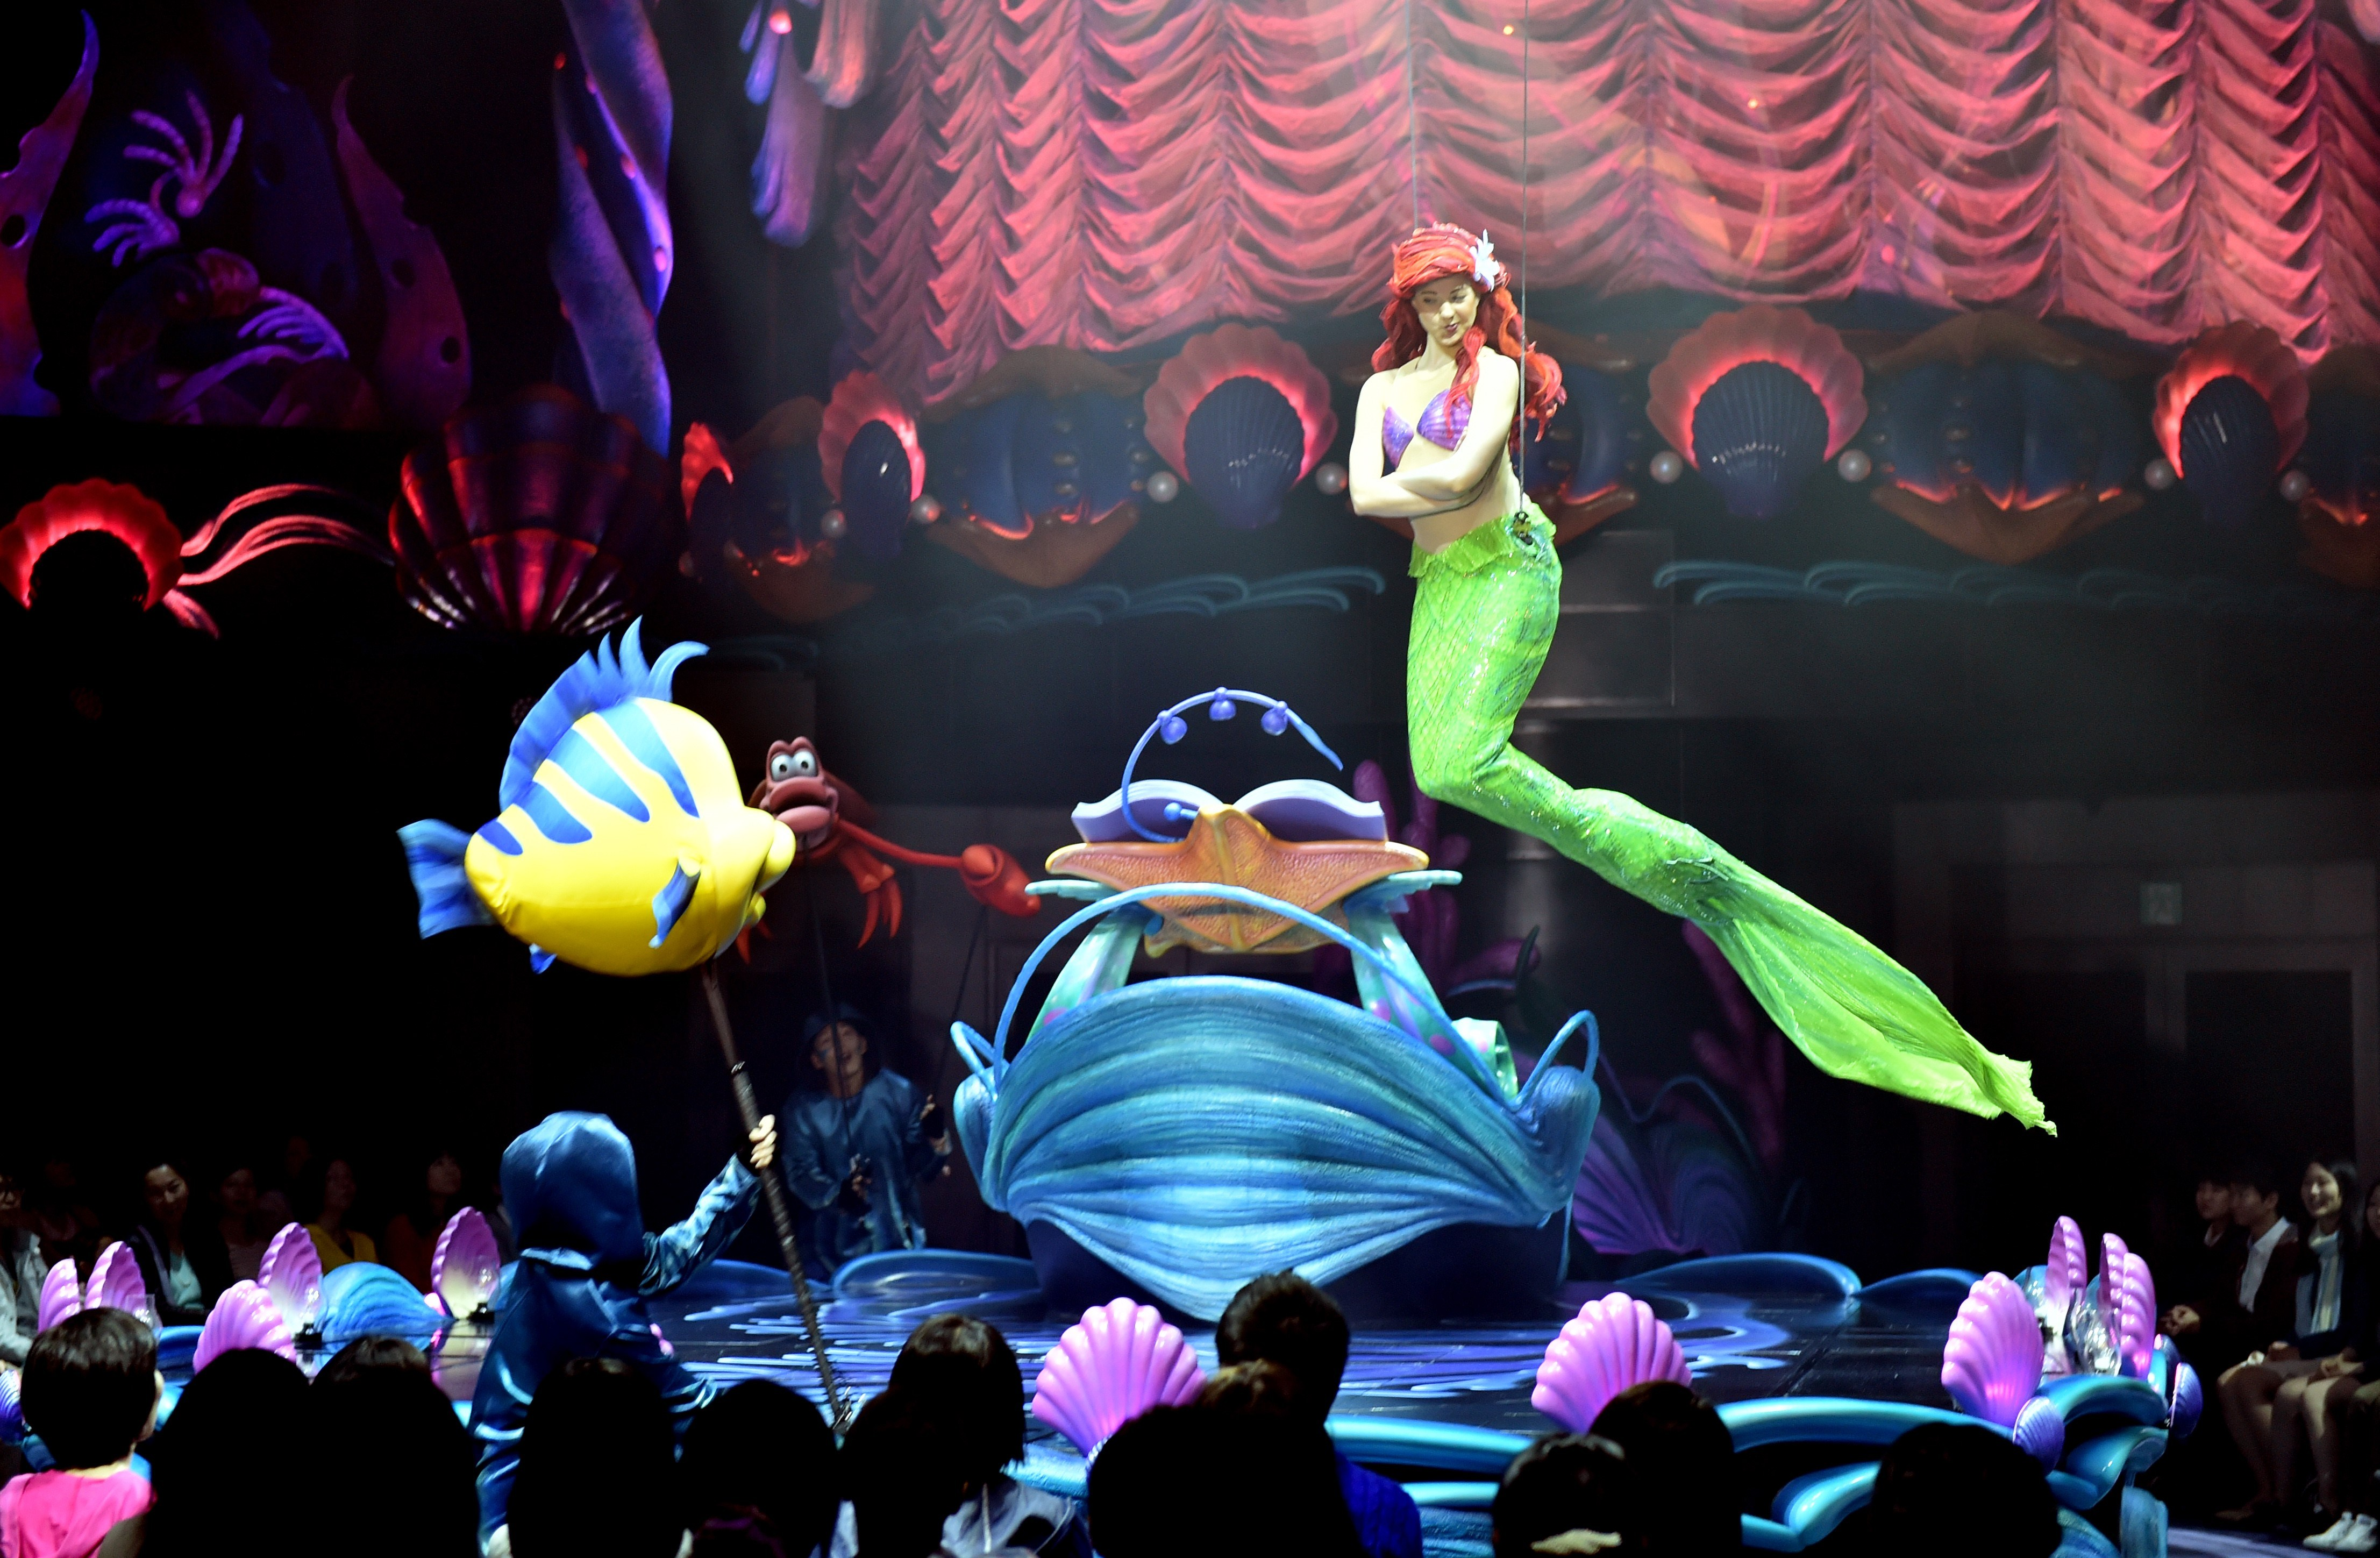 "Disney's Little Mermaid character Ariel sings and displays wire-action performance in the air during the press preview of the new attraction ""King Triton's Concert"" at the Tokyo DisneySea in Urayasu, suburban Tokyo on April 20, 2015. The new musical show will open for public from April 24. Disney theme park Tokyo Disneyland and Tokyo DisneySea marked record high visitors of 31.38 million in the fiscal 2014 year ended March.   AFP PHOTO / Yoshikazu TSUNO        (Photo credit should read YOSHIKAZU TSUNO/AFP/Getty Images)"